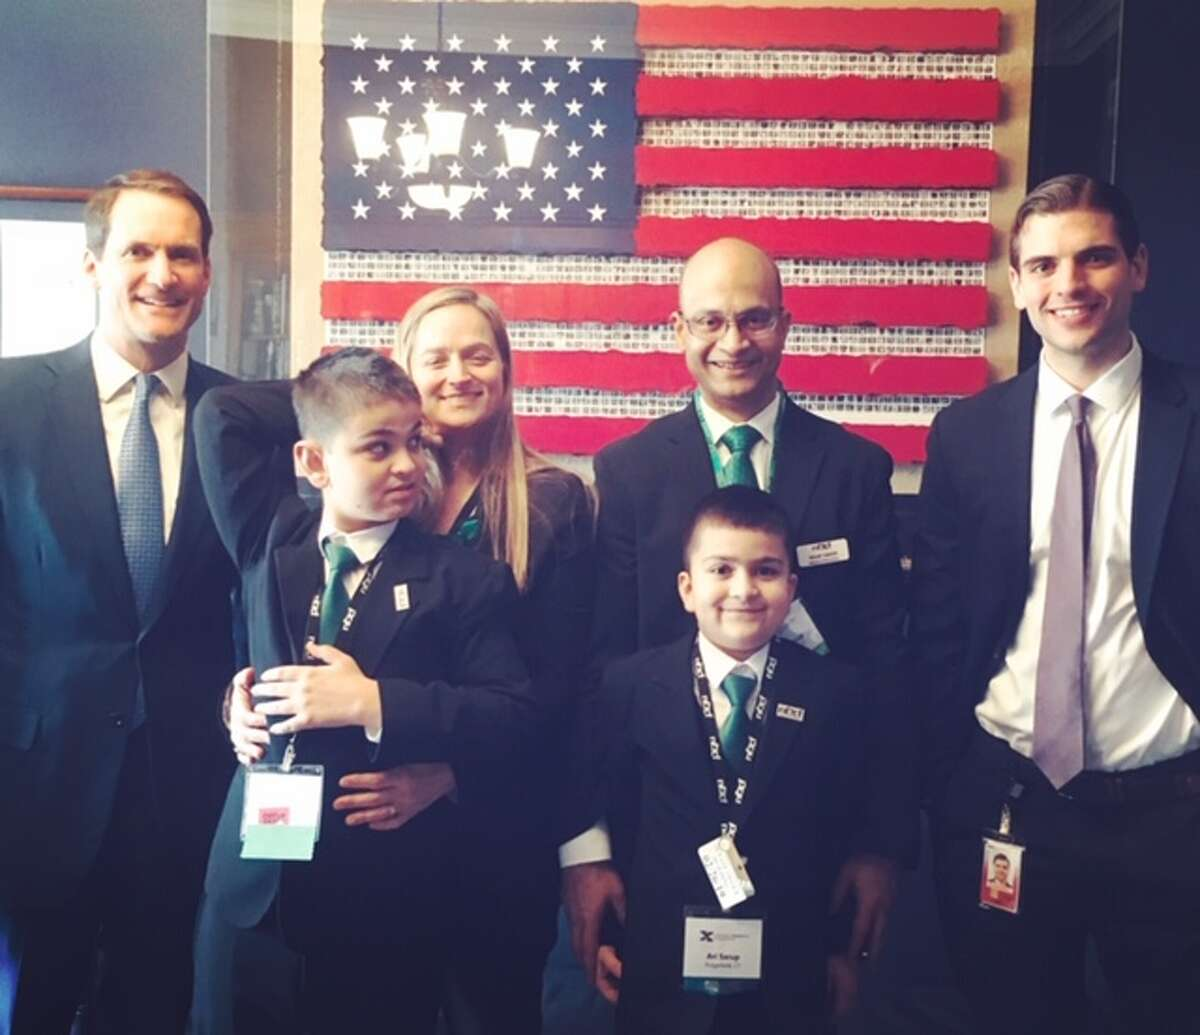 Ridgefield students Jordan Ari Sarup joined the National Fragile X Foundation on Capitol Hill on Feb. 26 to advocate for those impacted by Fragile X Syndrome. Jordan was born with a genetic condition called Fragile X Syndrome (FXS), which classifies him as intellectually disabled. The brothers met with Congressman Jim Himes, far left, and his staff members while in Washington.